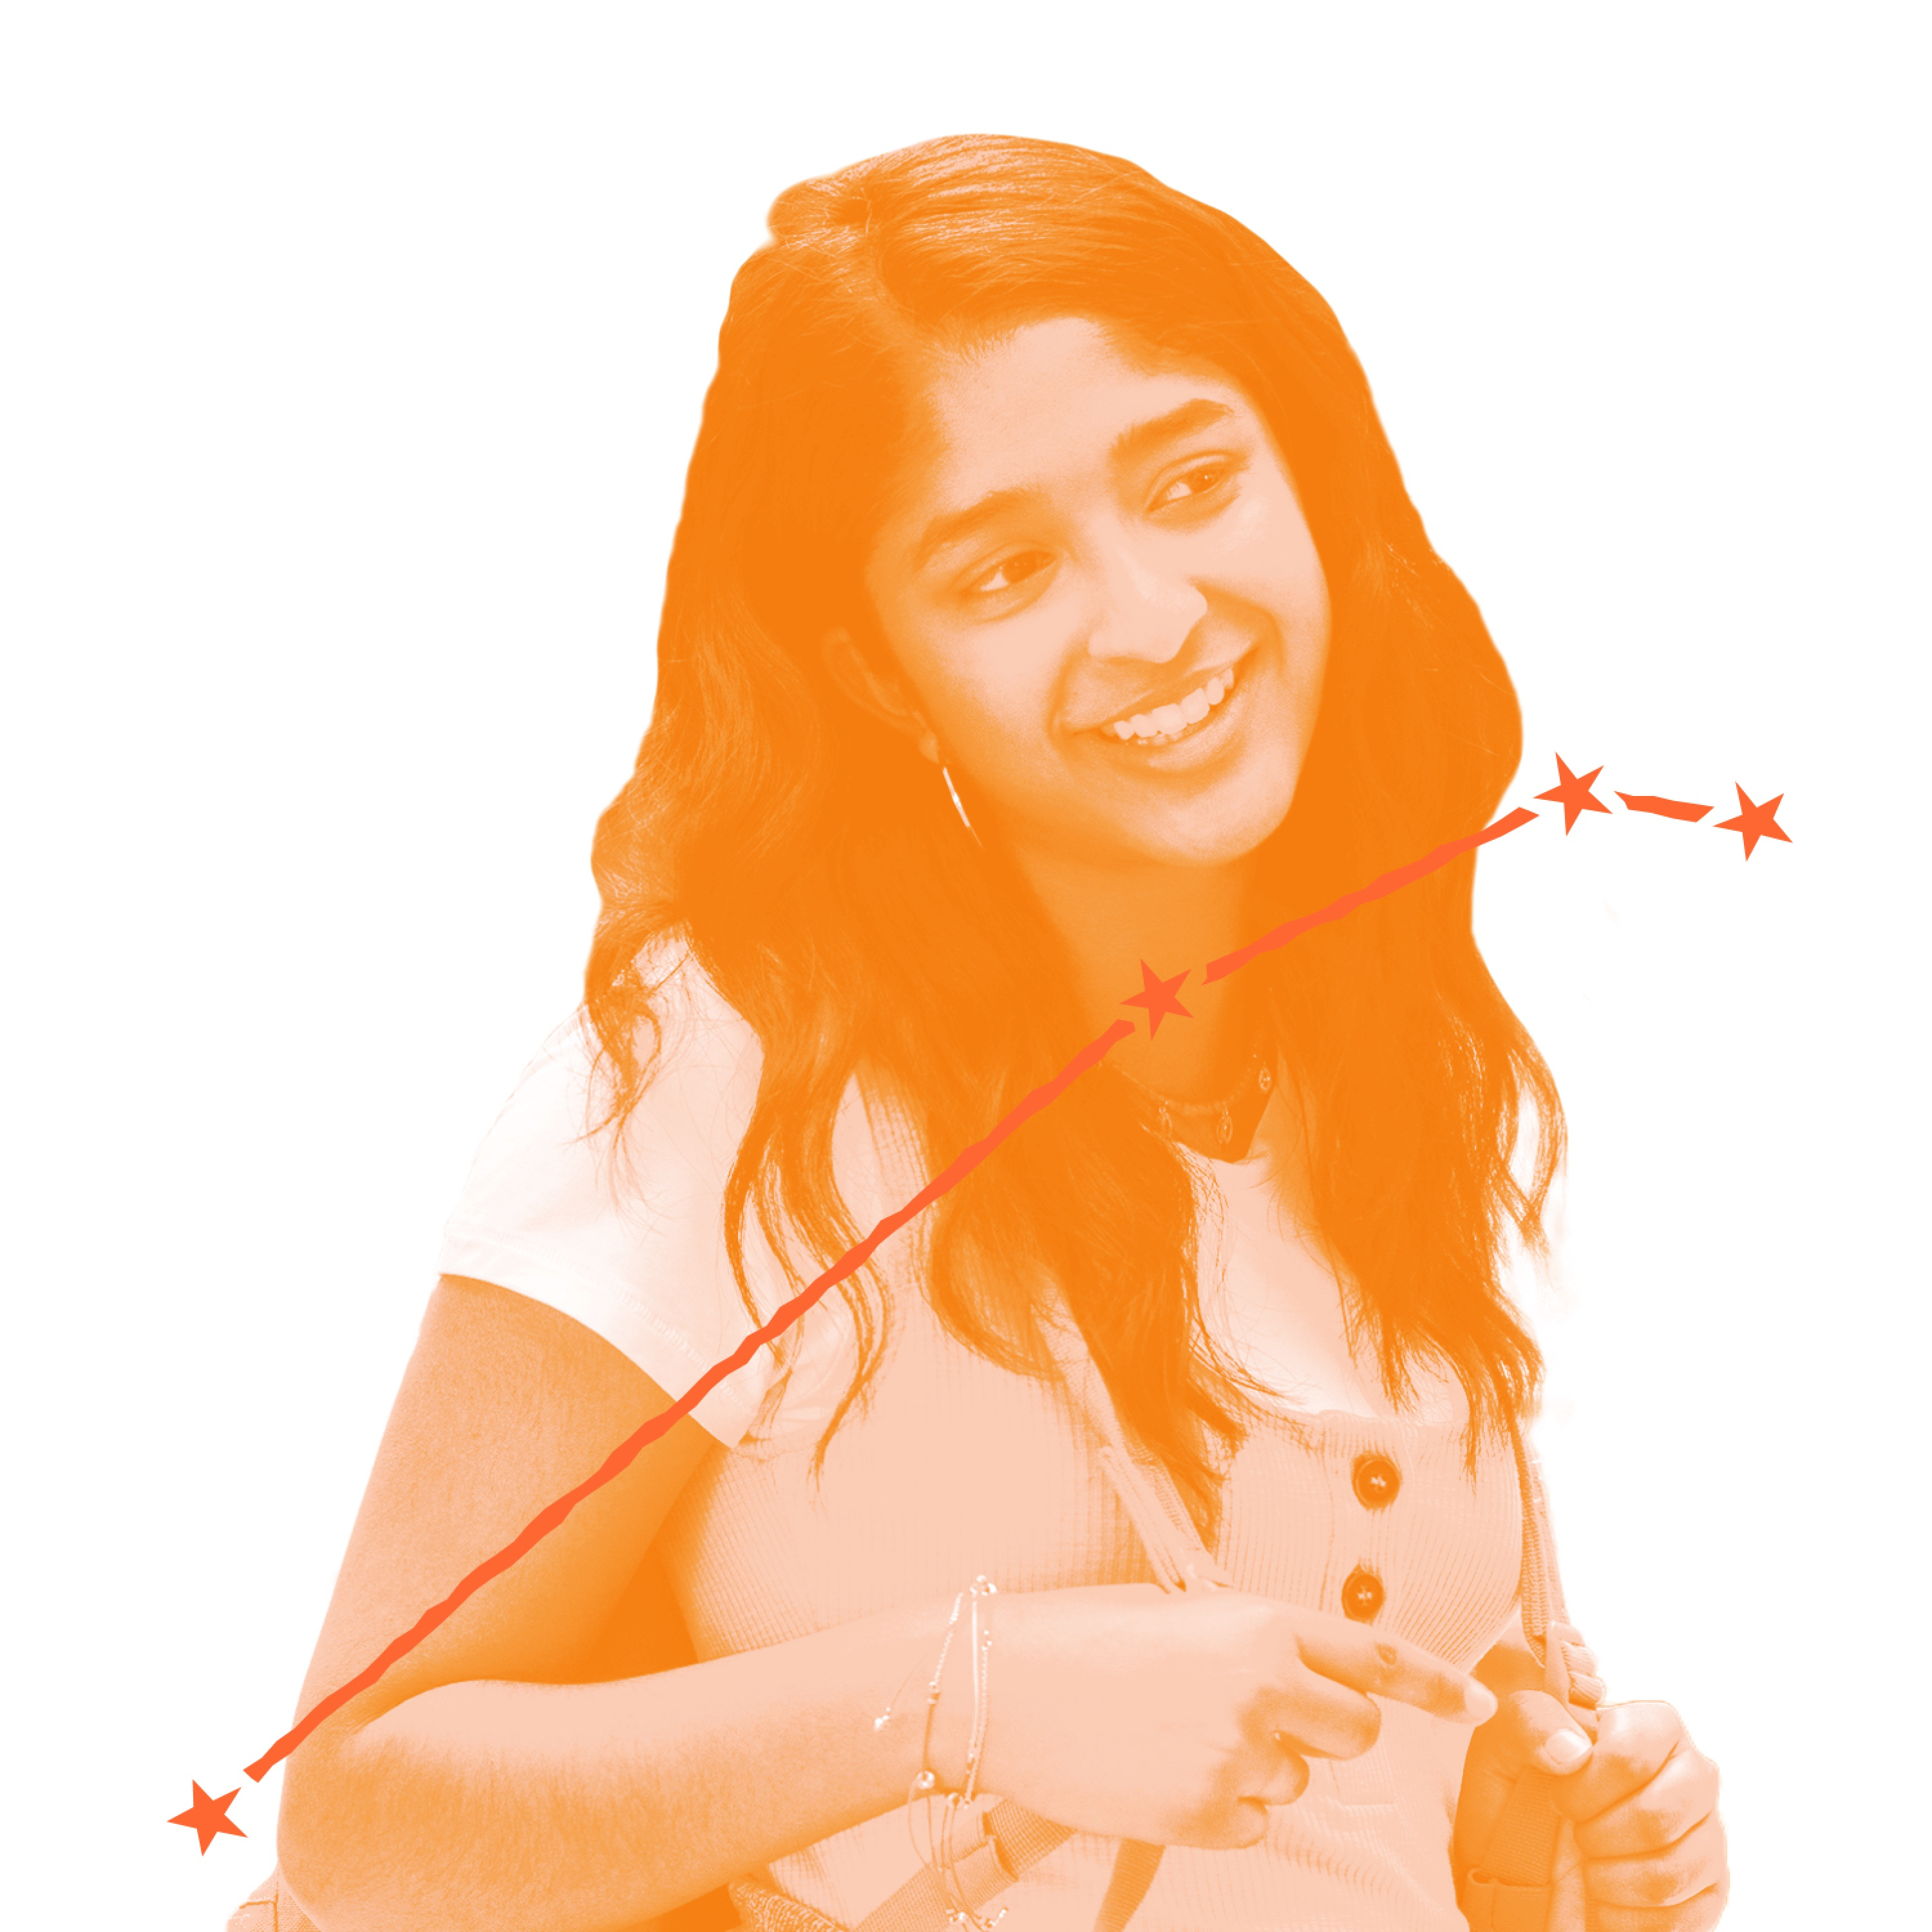 Devi Vishwakumar (played by Maitreyi Ramakrishnan) smiles in this still from Never Have I Ever. Wearing a white shirt and carrying a backpack, she looks like your average teen, but she's got chutzpah for days. Over the image is an illustration of Devi's zodiac constellation.